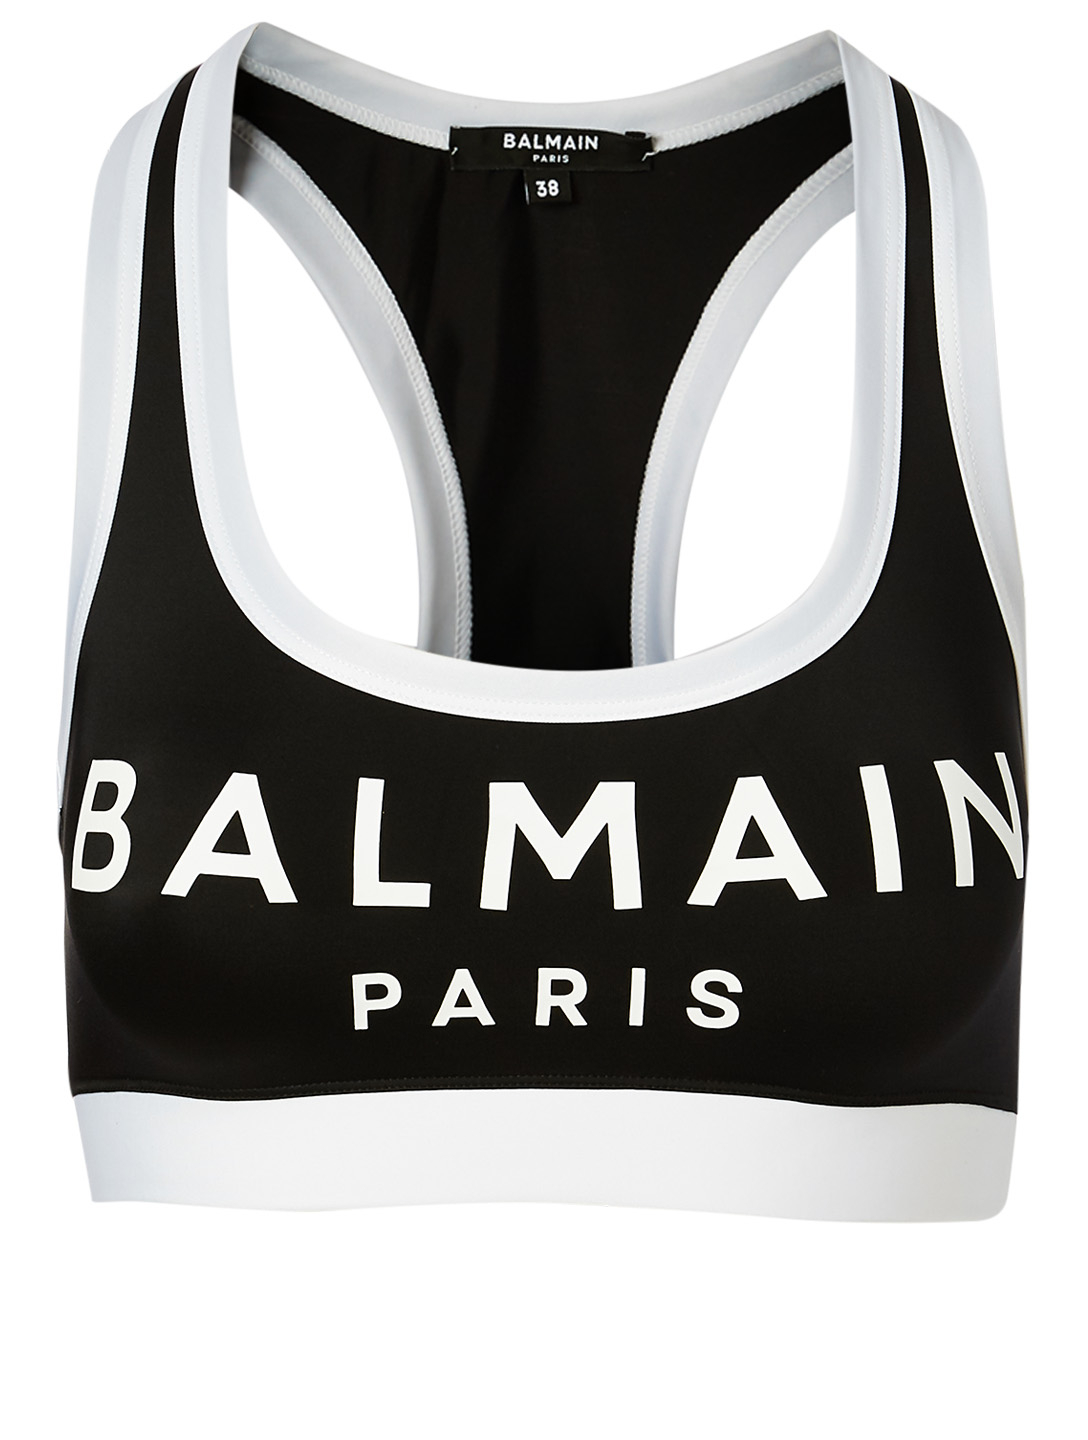 BALMAIN Logo Racerback Sports Bra Women's Black